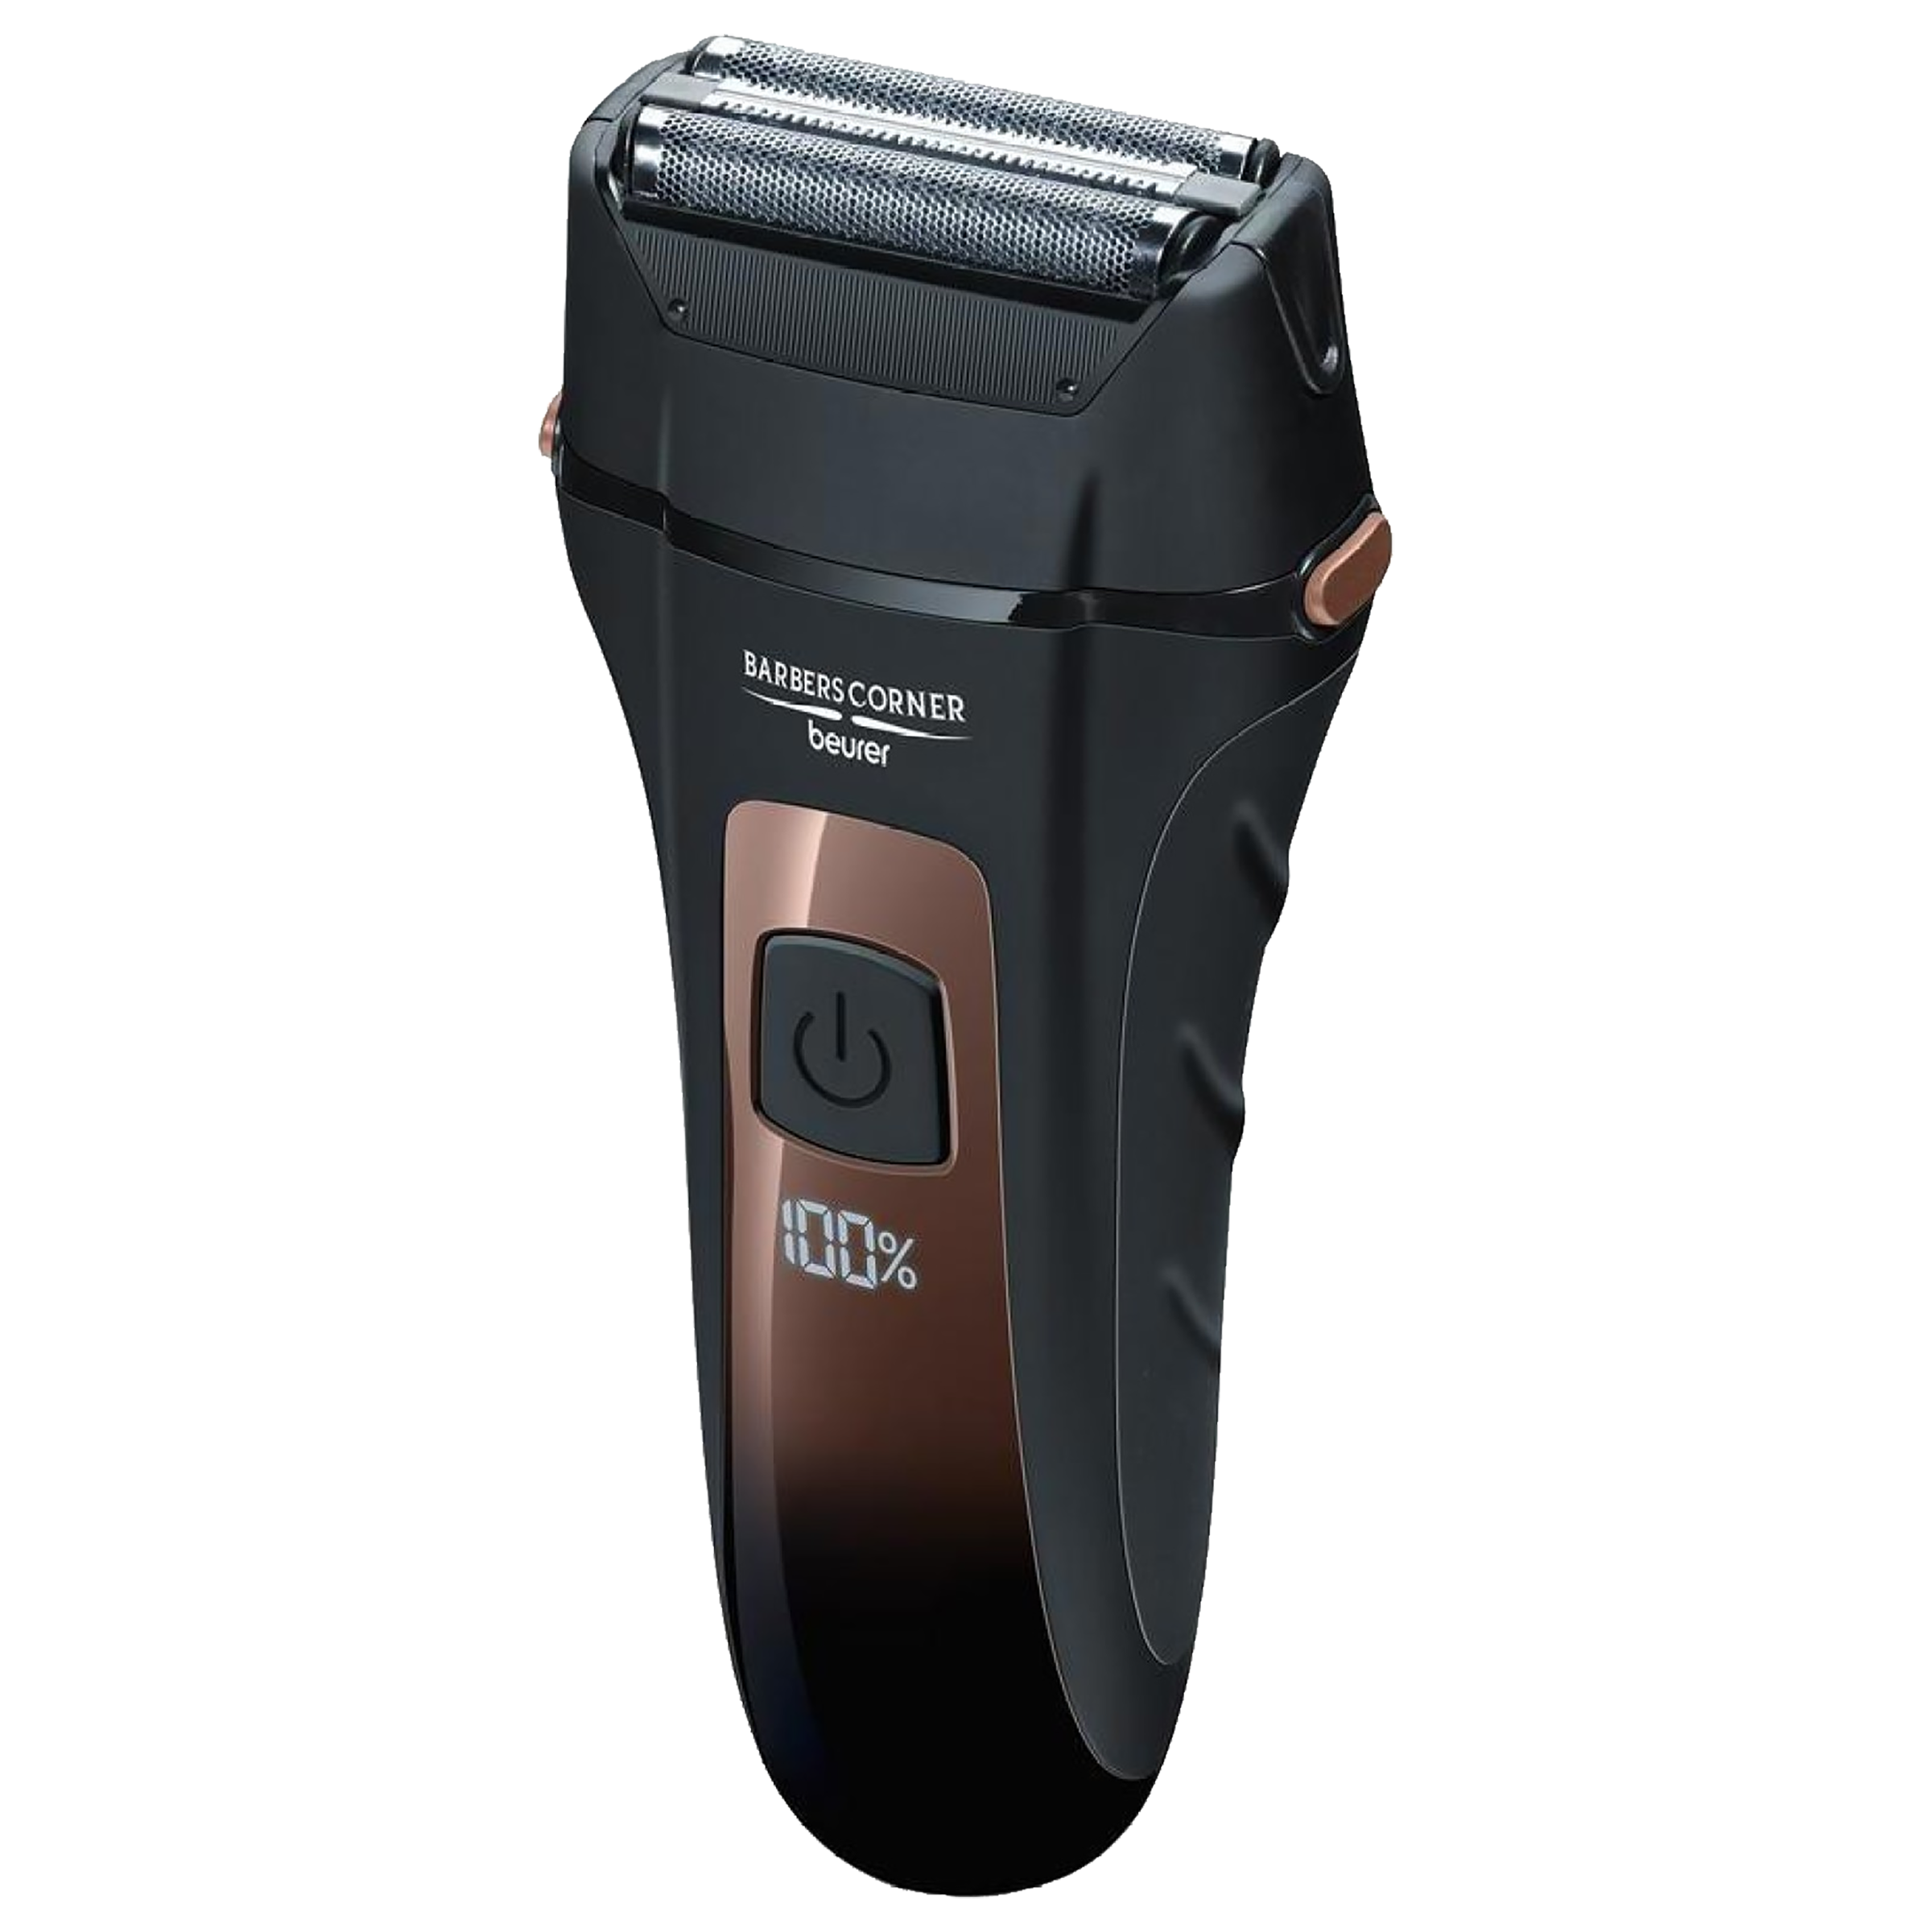 Beurer Stainless Steel Blades Cordless Operation Dry Shaver (Integrated Quick-Charge Function, HR 7000, Black)_1